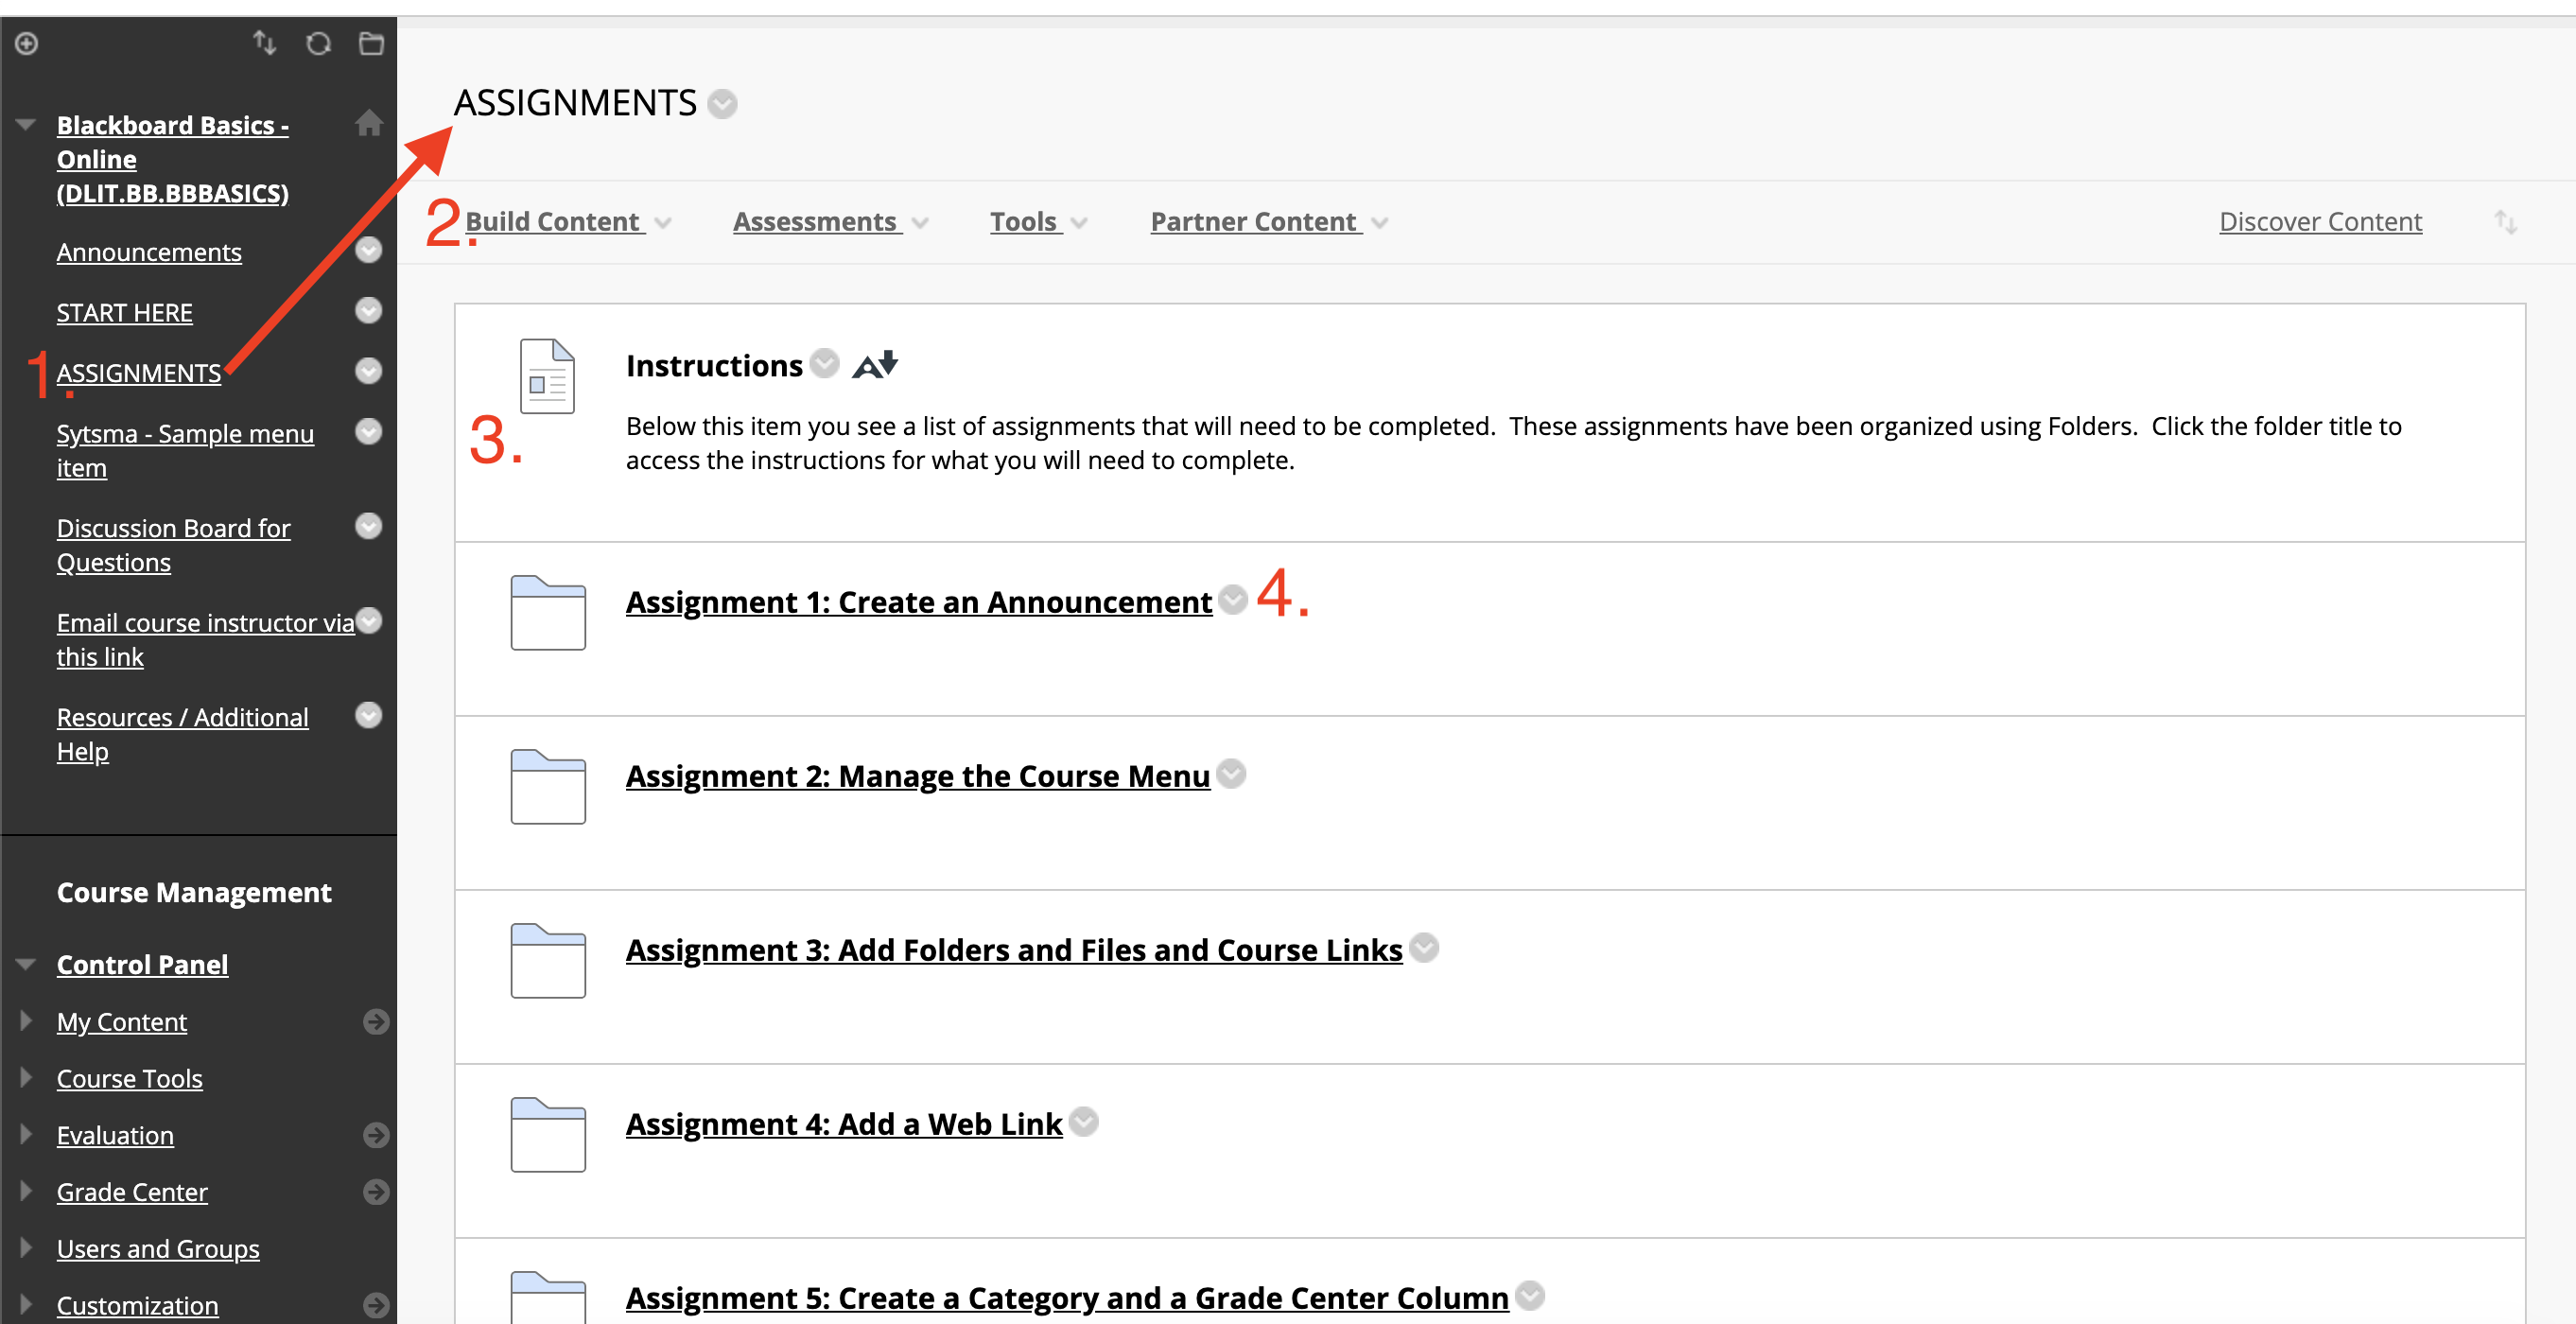 A Blackboard ASSIGNMENTS content area